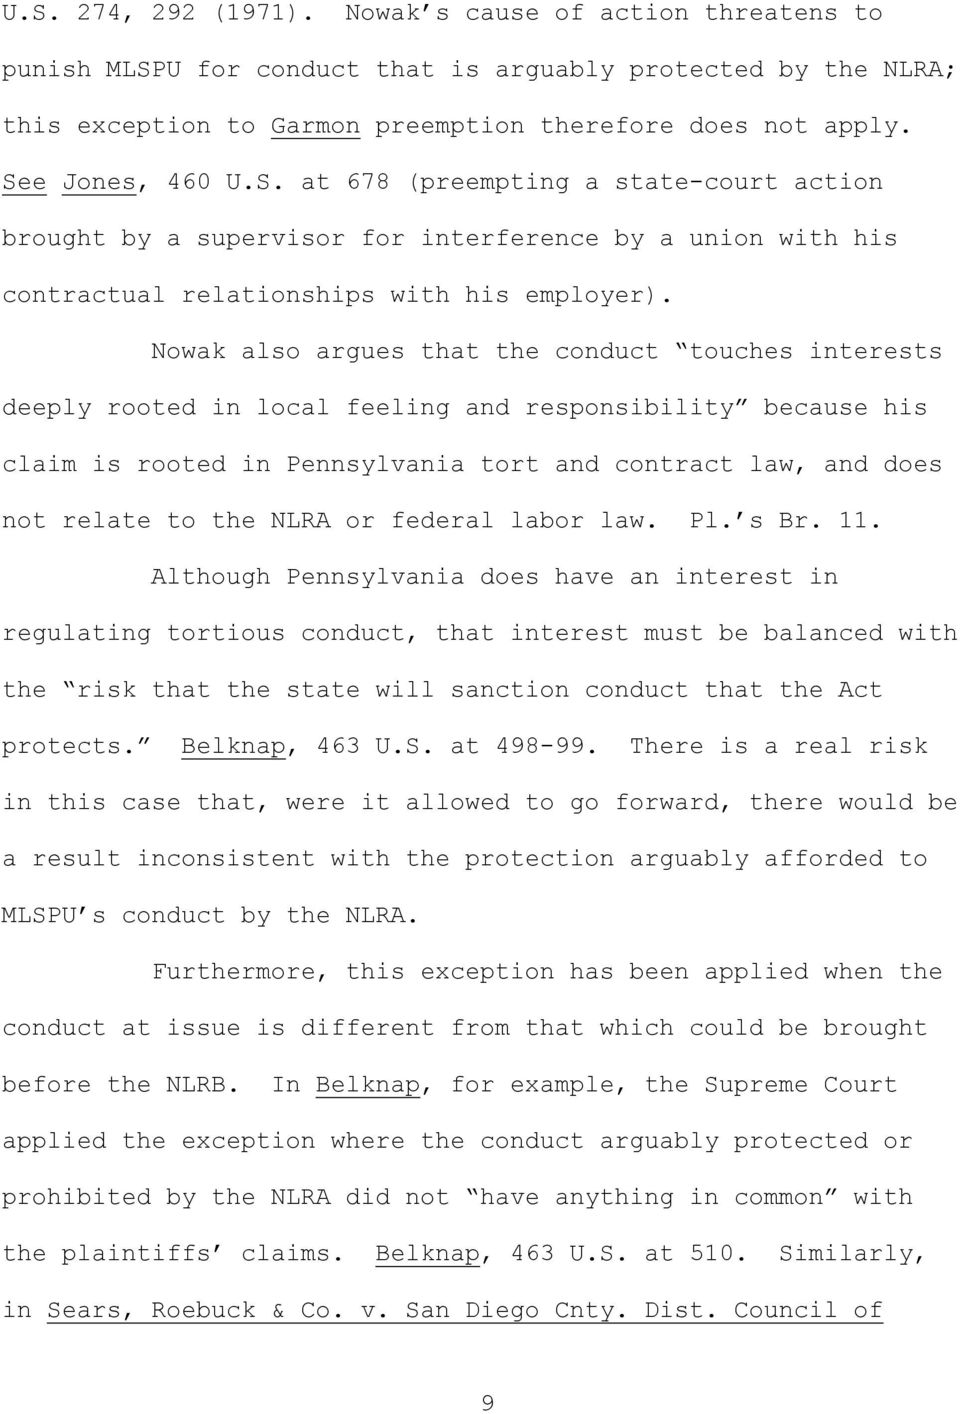 Nowak also argues that the conduct touches interests deeply rooted in local feeling and responsibility because his claim is rooted in Pennsylvania tort and contract law, and does not relate to the